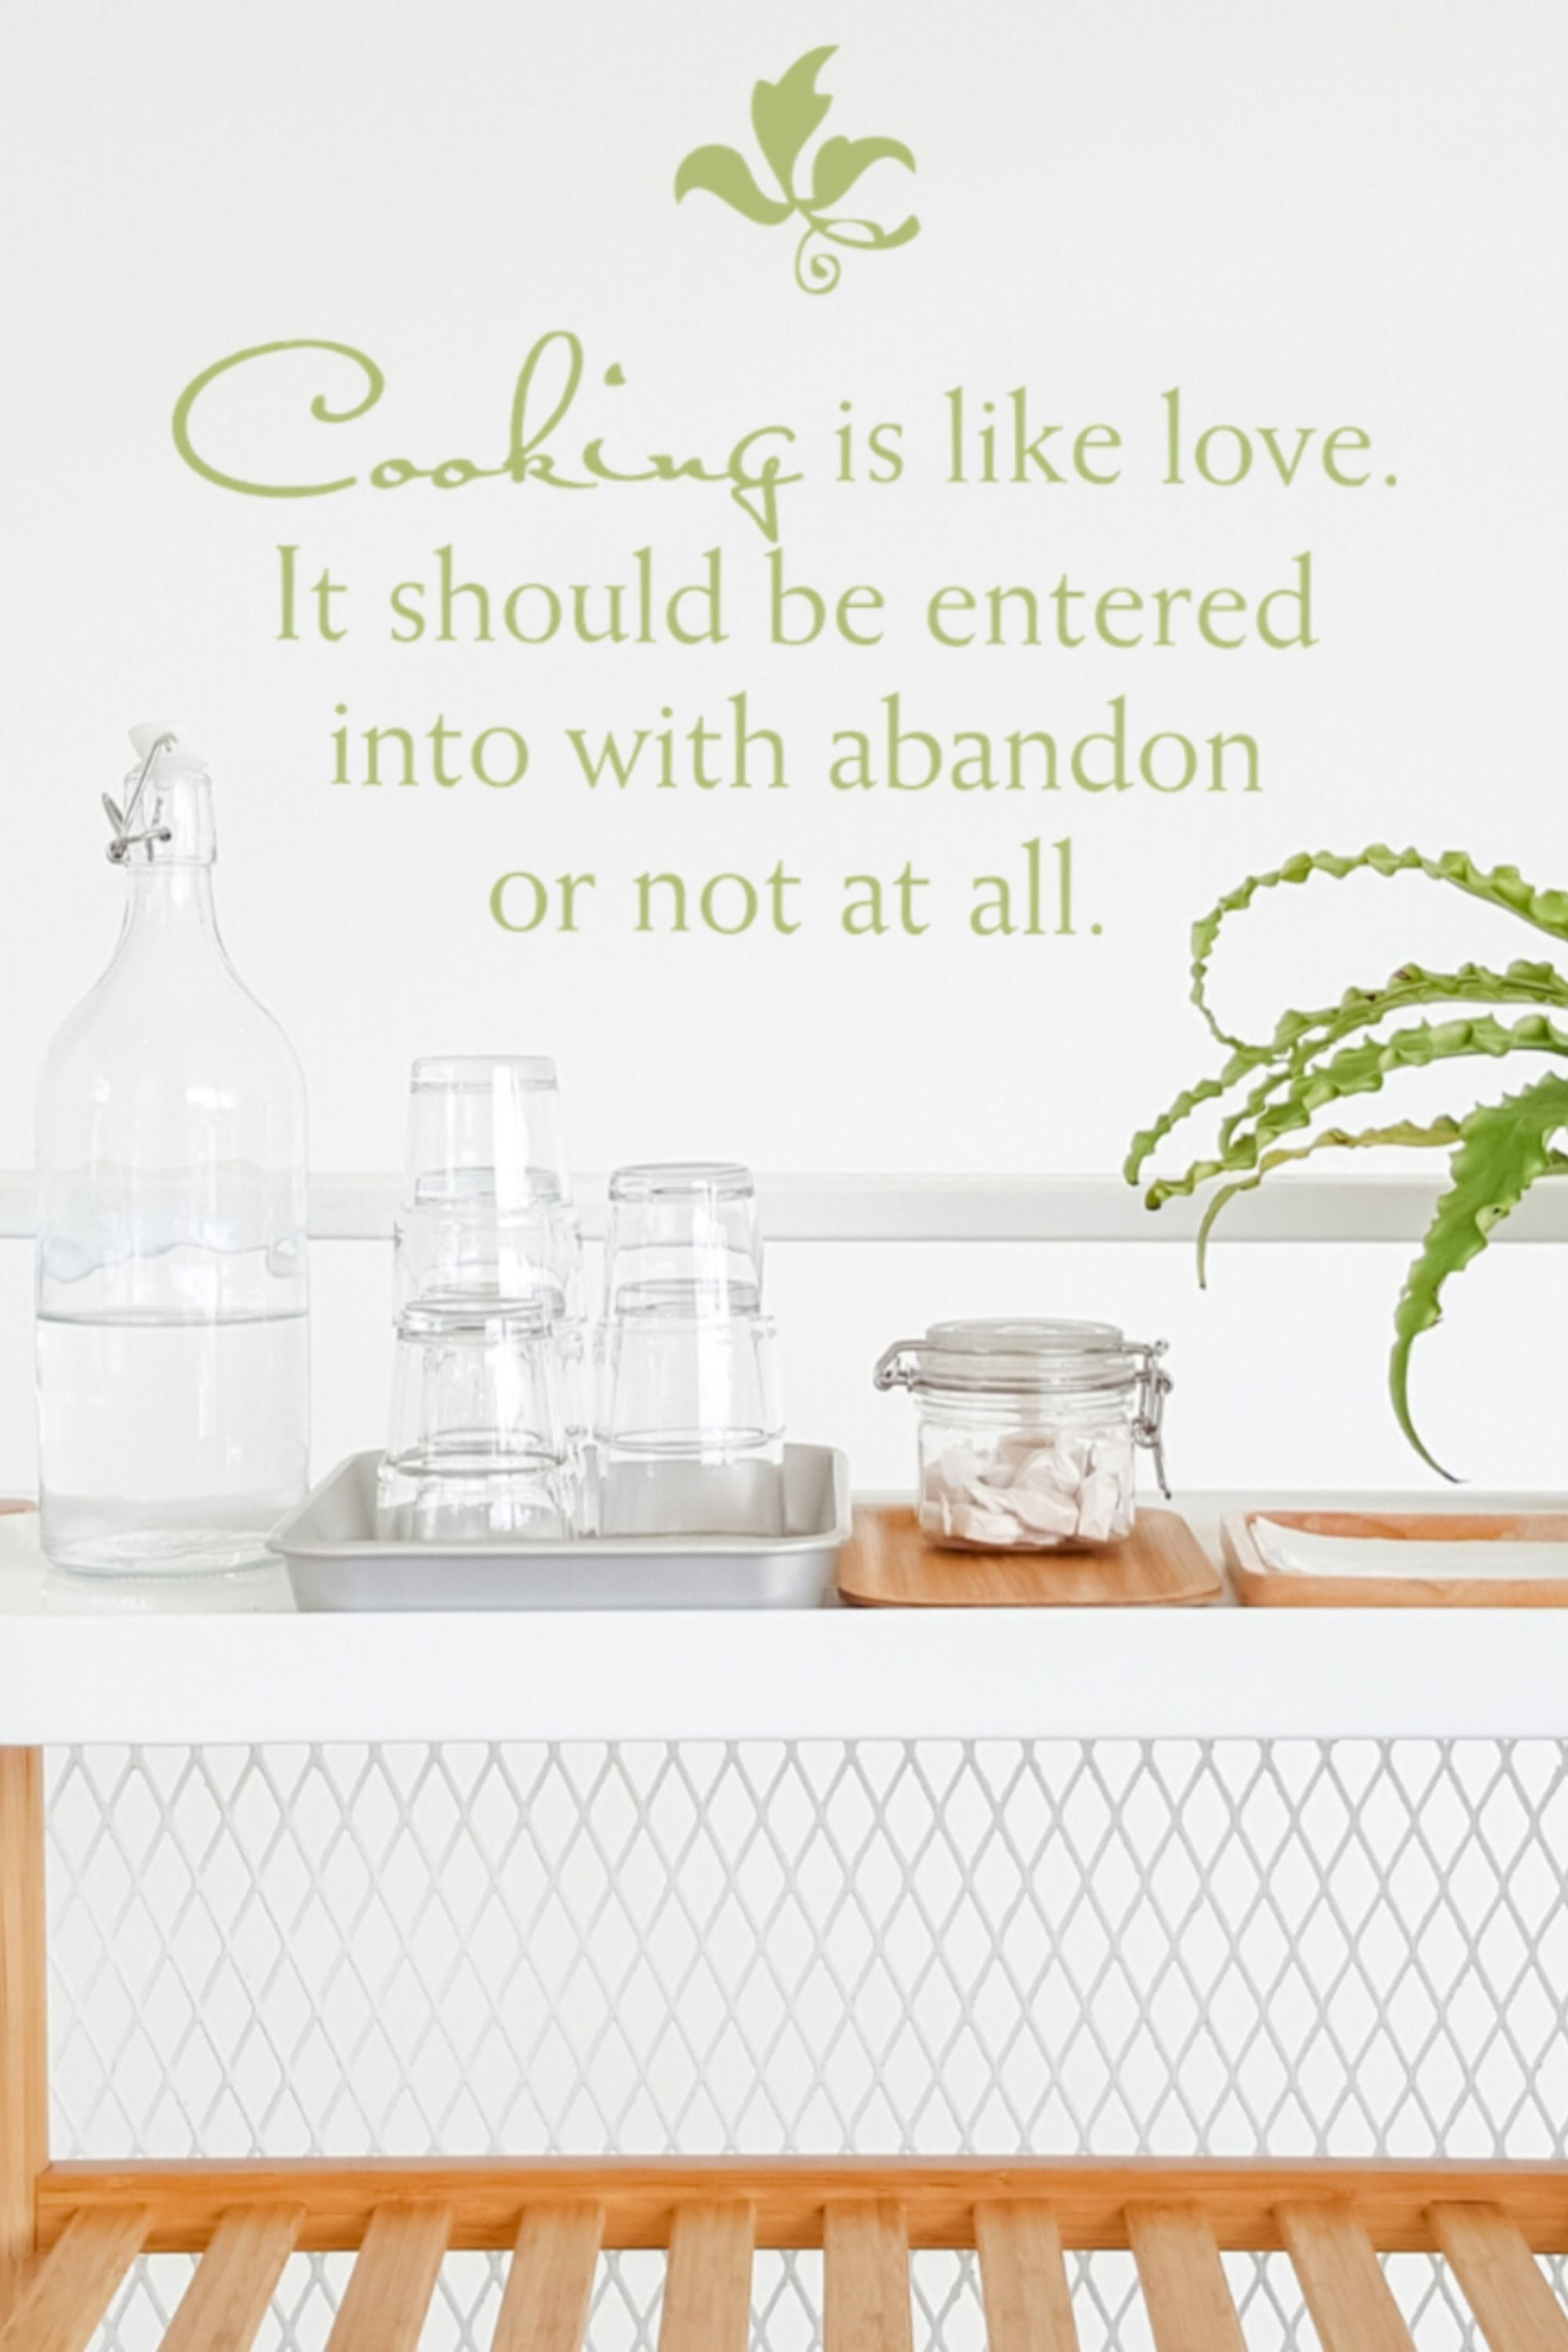 Cooking Is Like Love In 2020 Kitchen Wall Quotes Kitchen Art